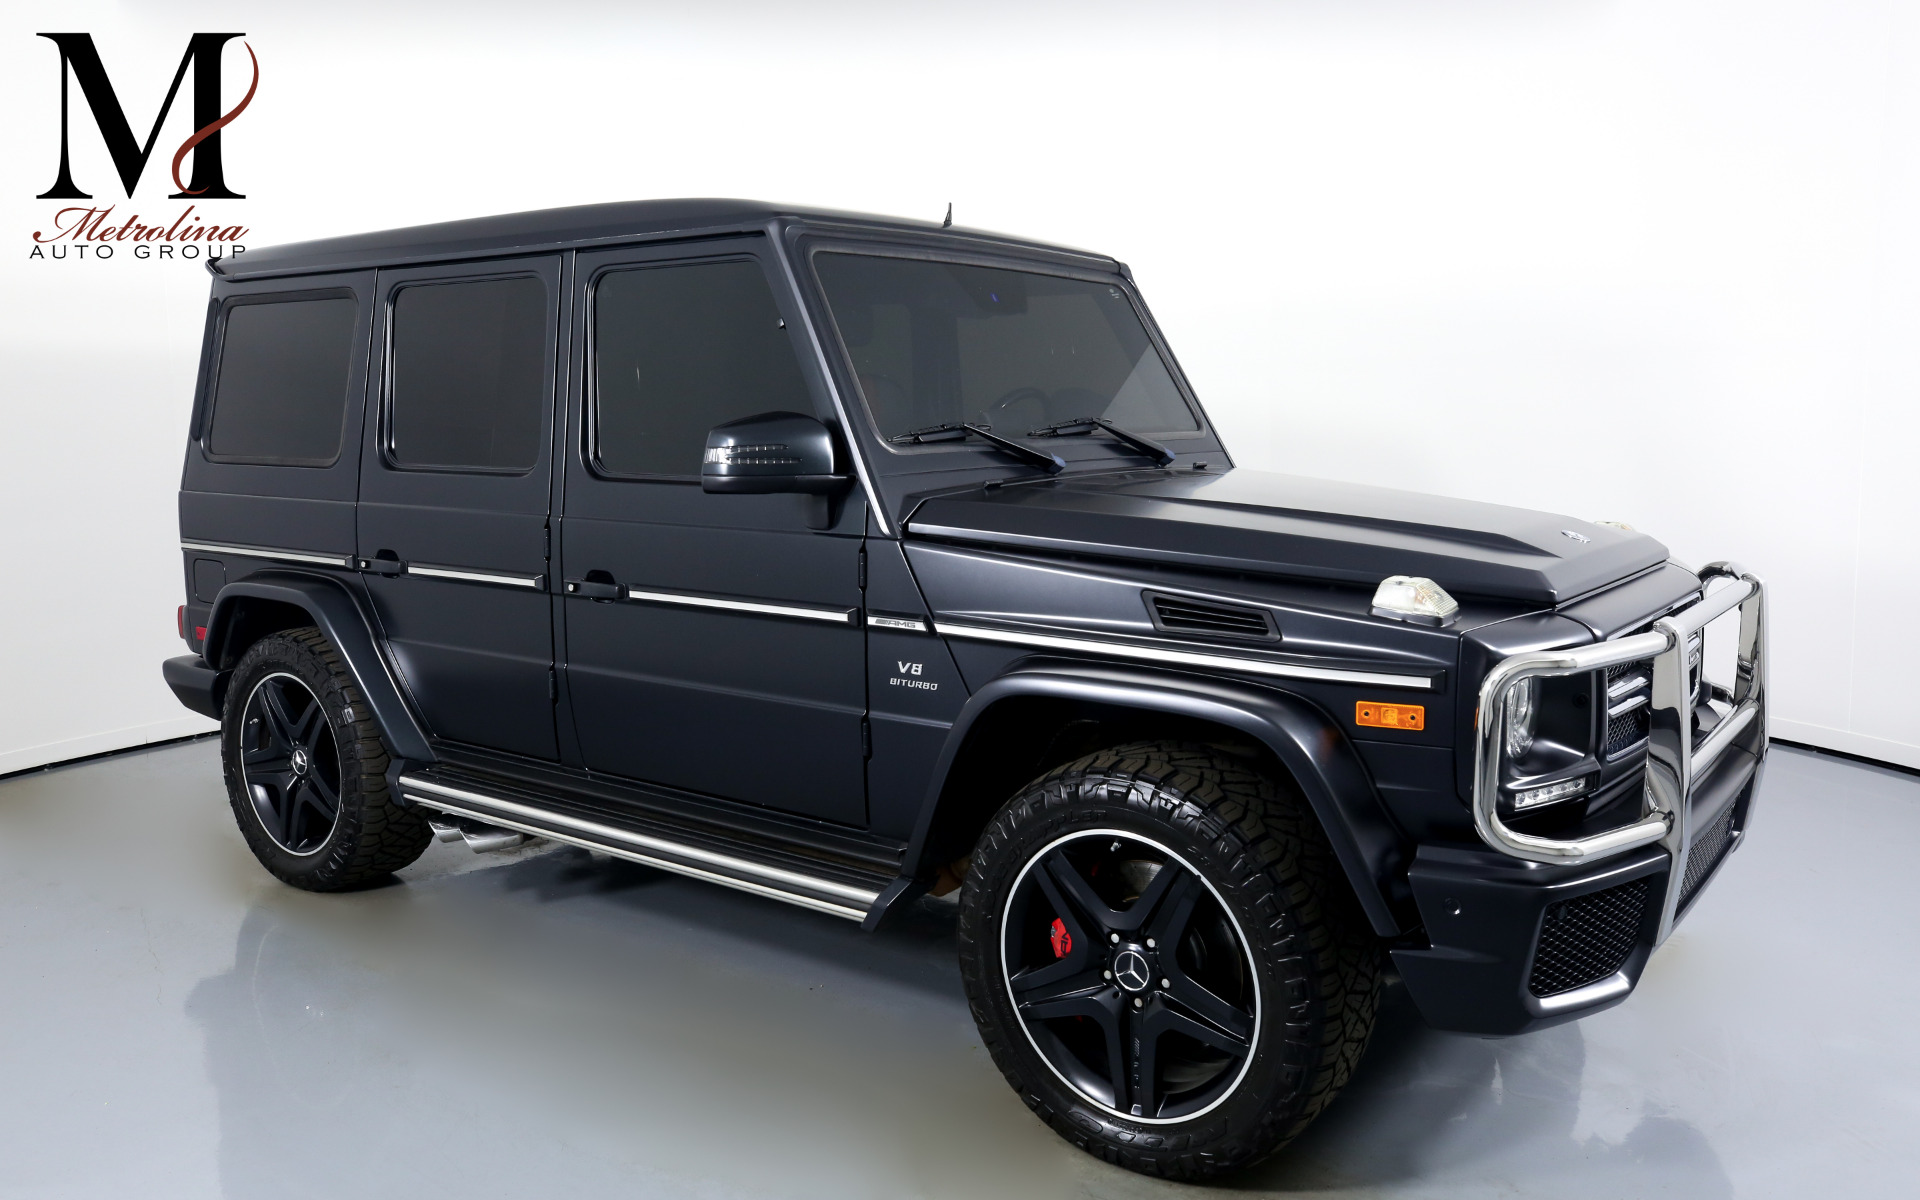 Used 2016 Mercedes-Benz G-Class AMG G 63 for sale Sold at Metrolina Auto Group in Charlotte NC 28217 - 1